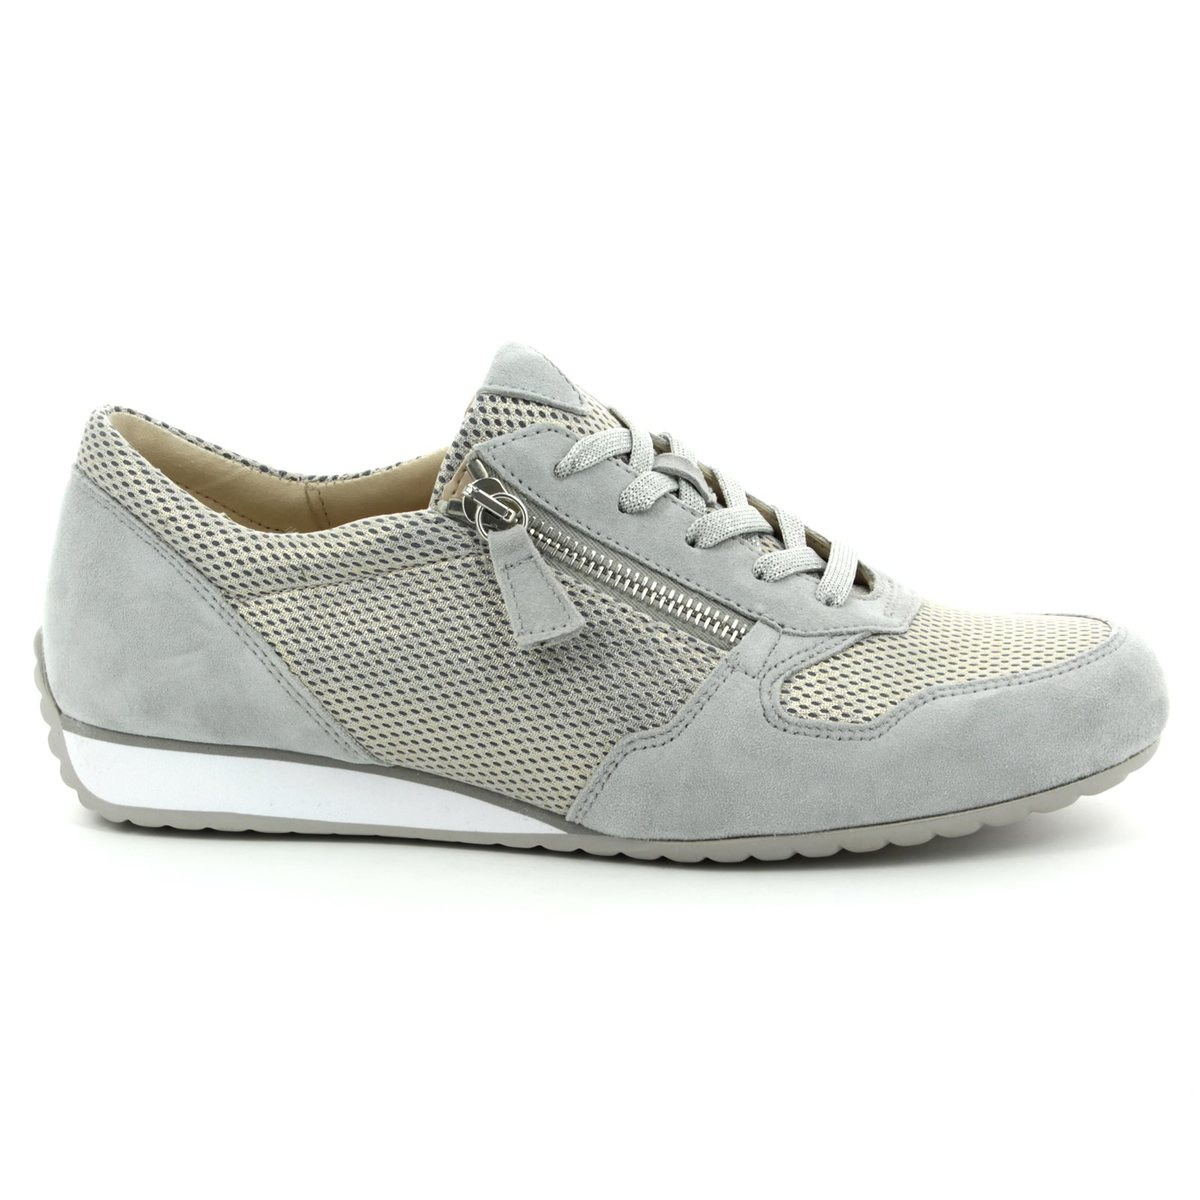 Gabor Trainer Shoe - Maybelle 8 GREY